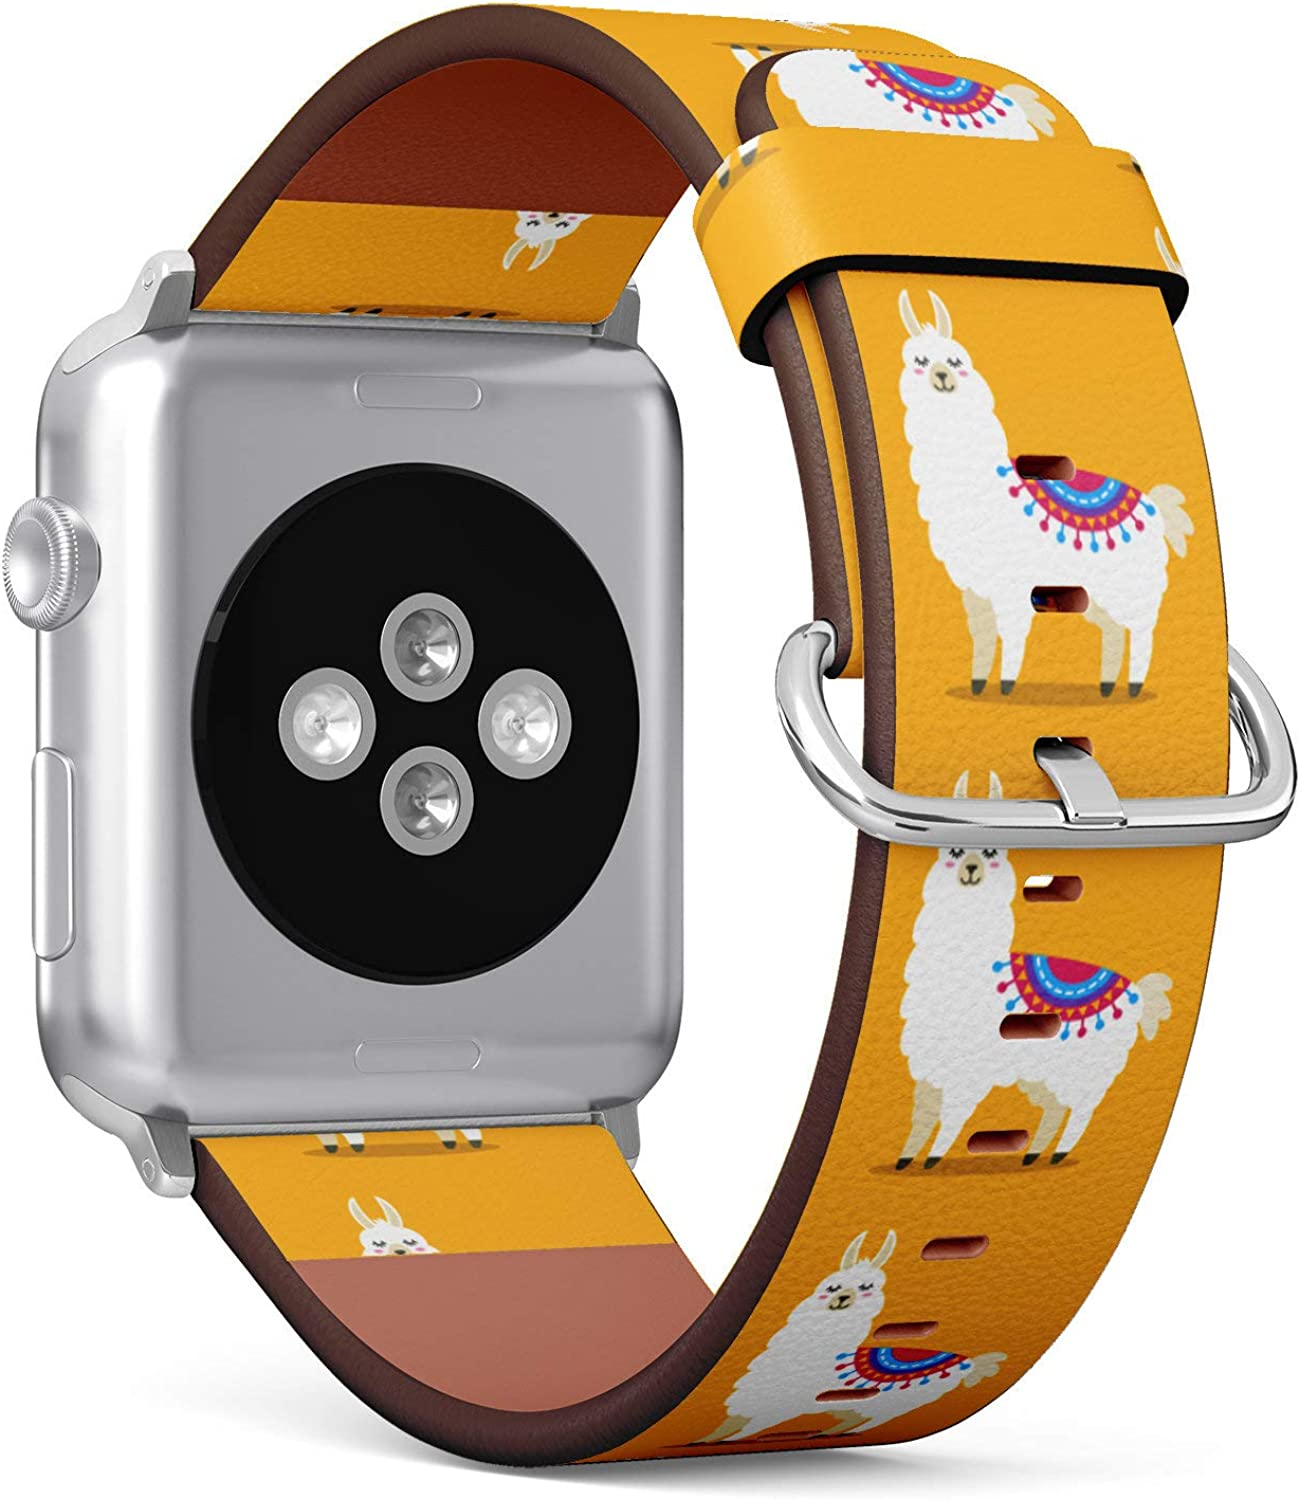 (Cute Pattern with Cartoon Llama) Patterned Leather Wristband Strap for Apple Watch Series 4/3/2/1 gen,Replacement for iWatch 42mm / 44mm Bands